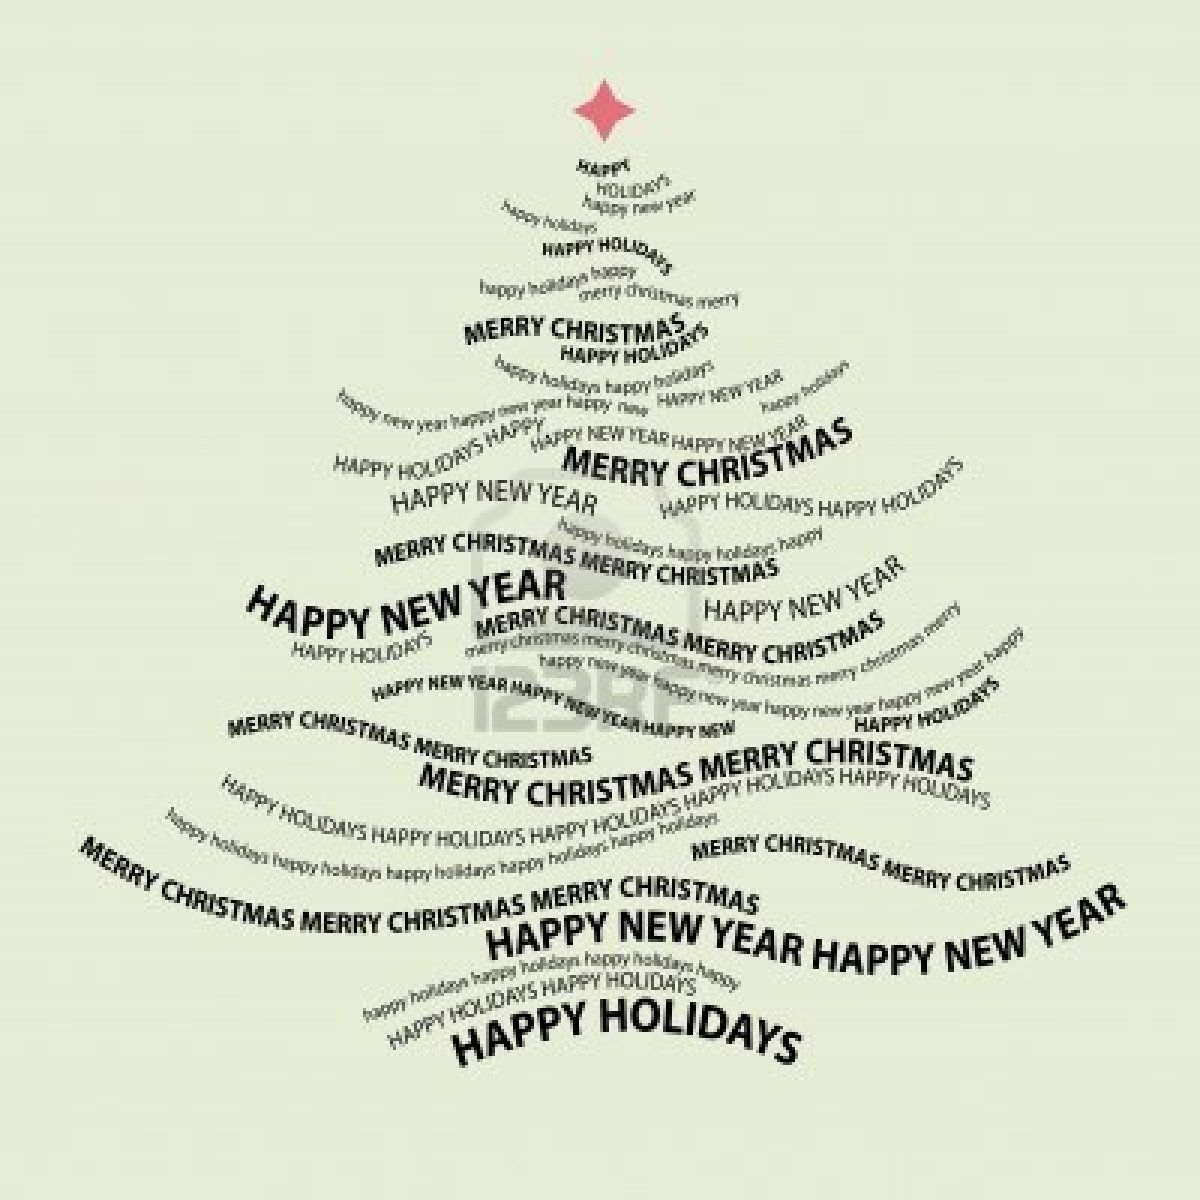 Christmas Tree Shape From Words Typographic Composition Vector Christmas Typography Tree Shapes Christmas Vectors